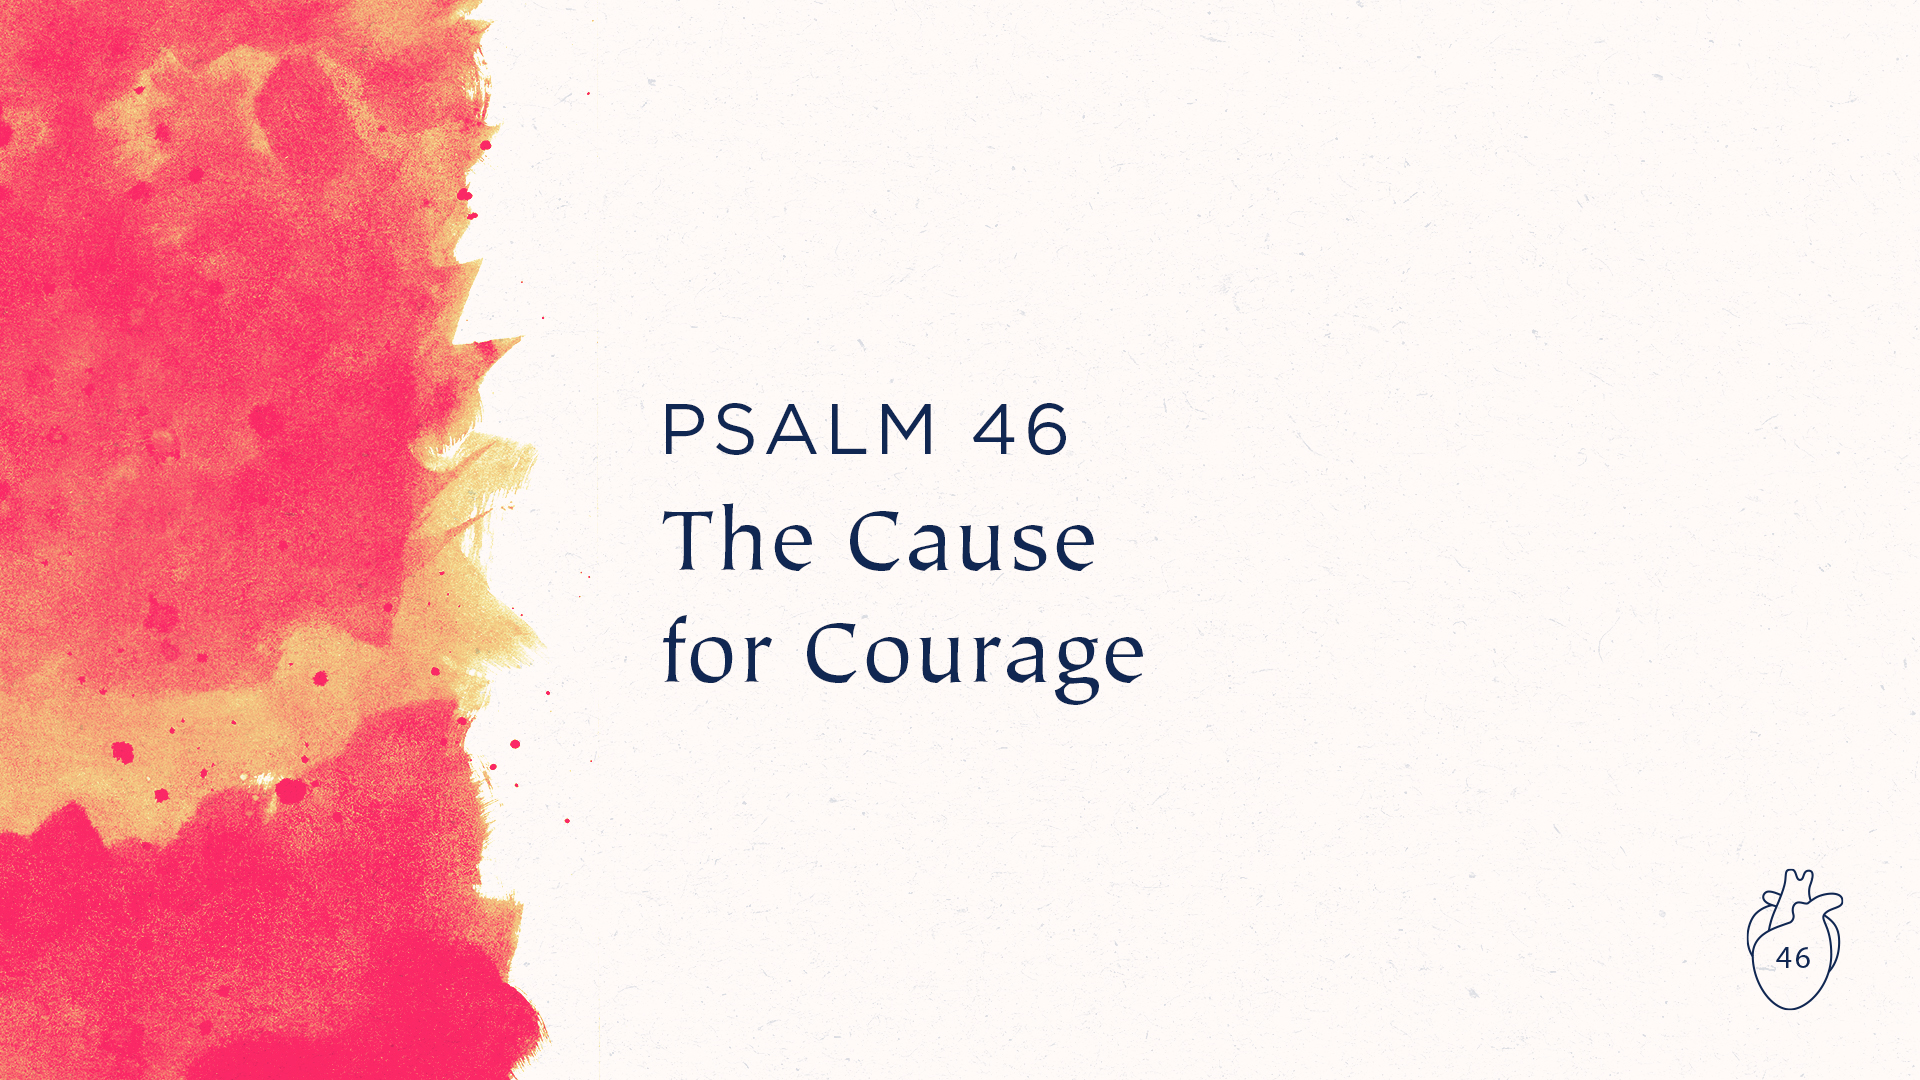 The Cause for Courage